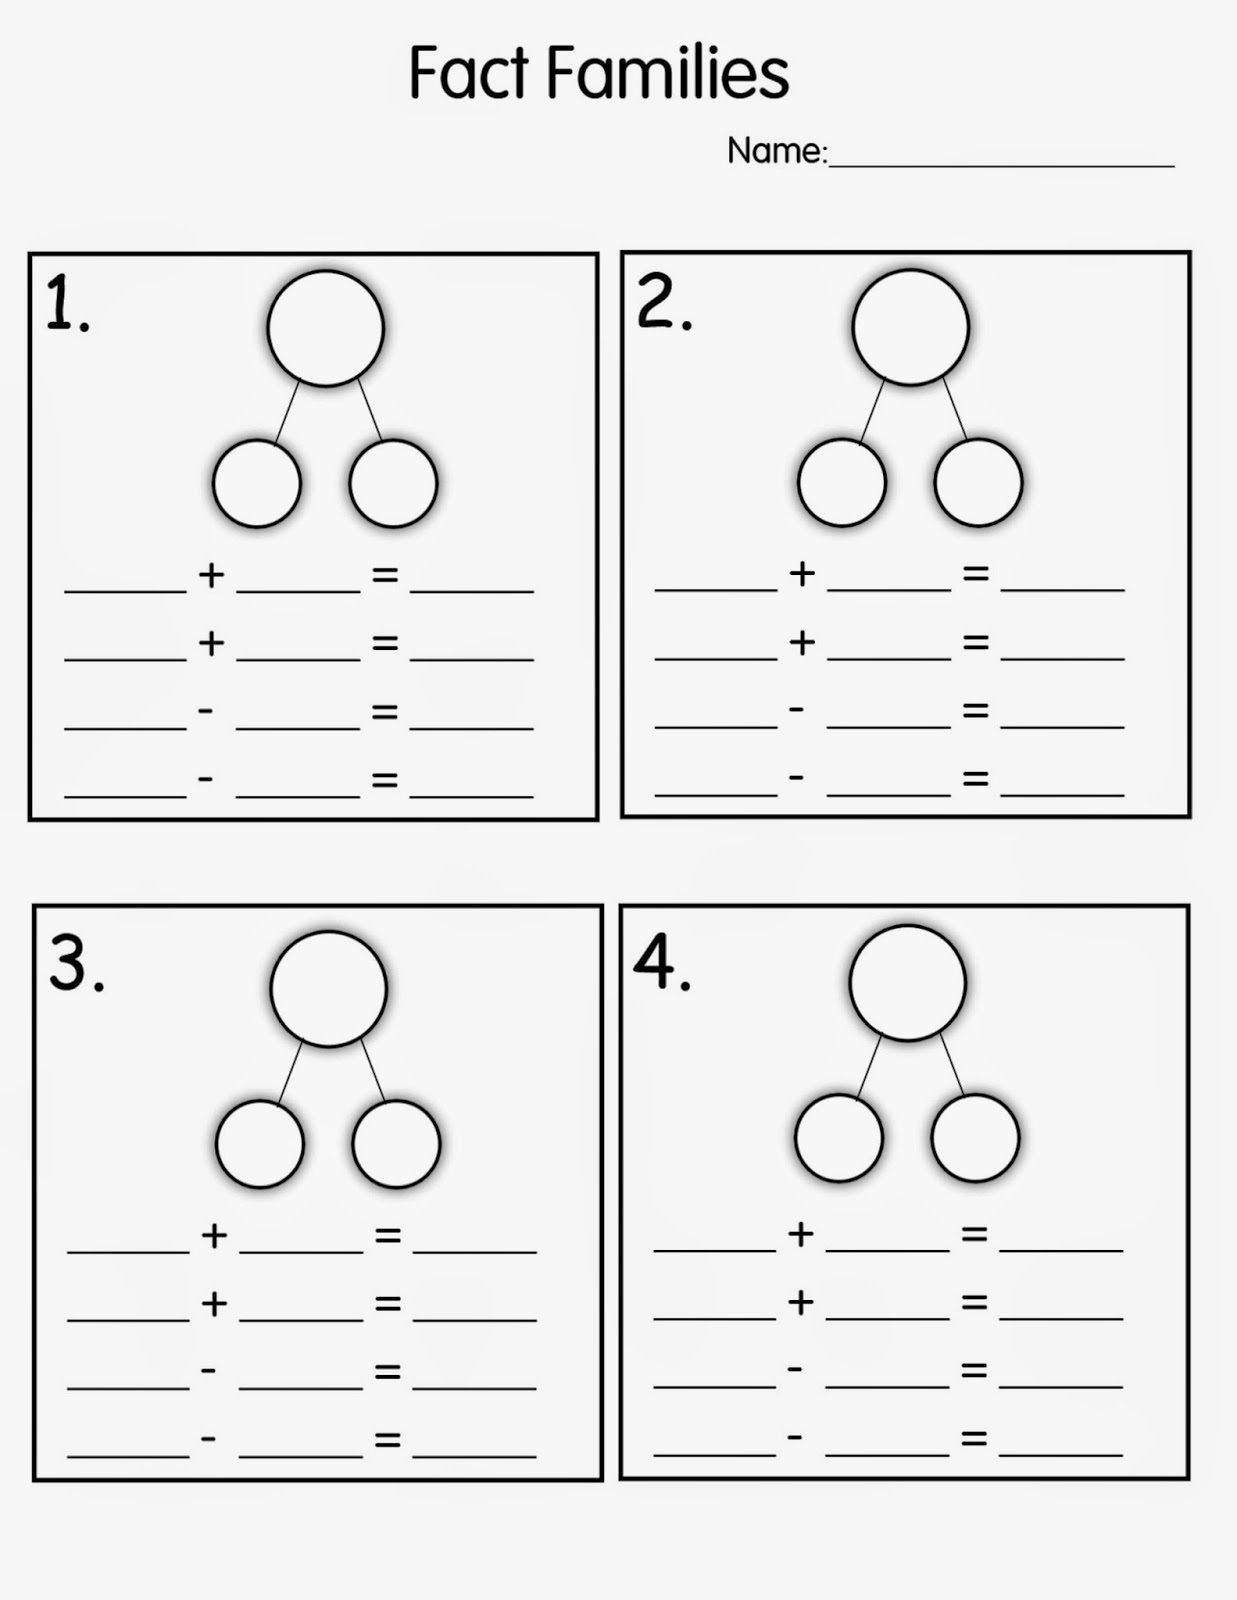 Fact Family Worksheets 1st Grade